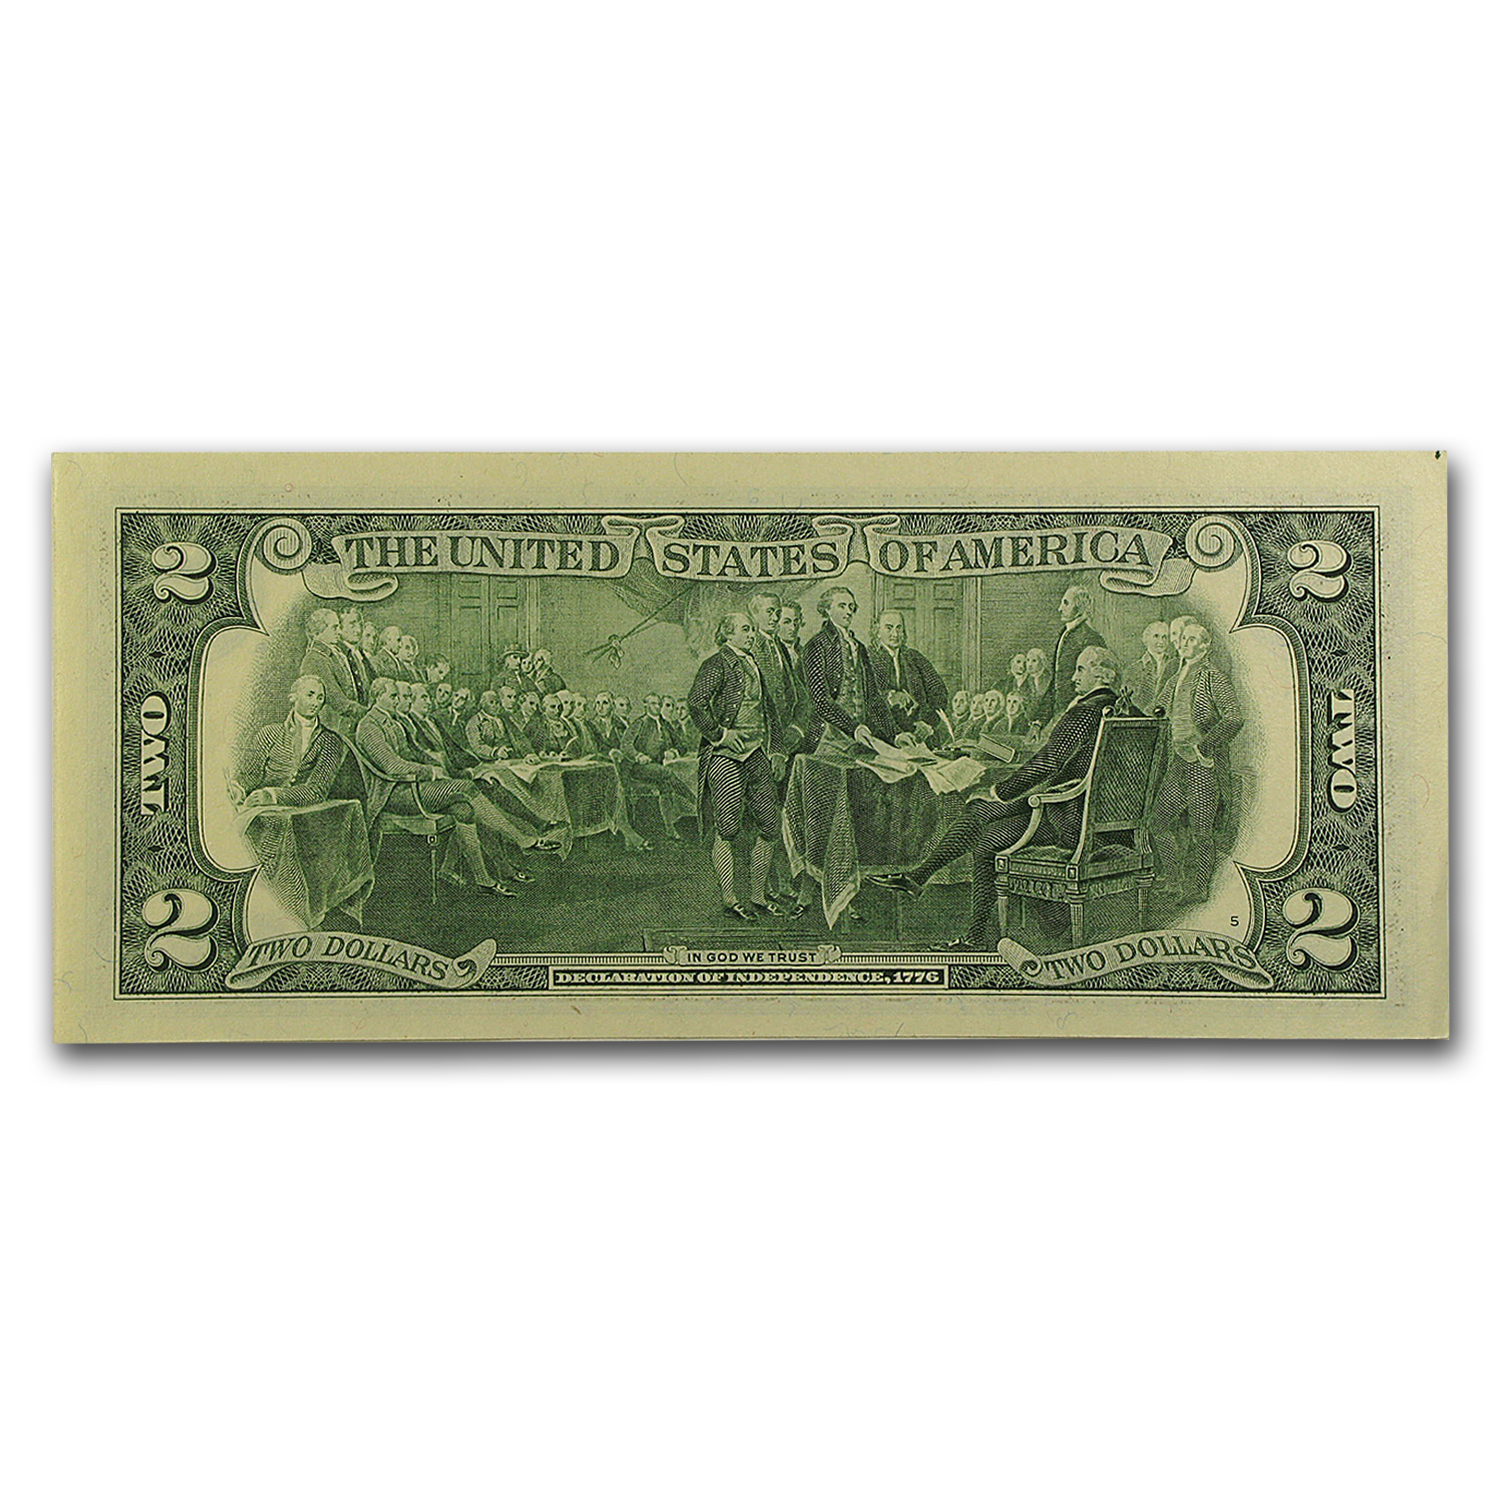 2003 (I-Minneapolis) $2.00 FRN (Crisp Uncirculated)